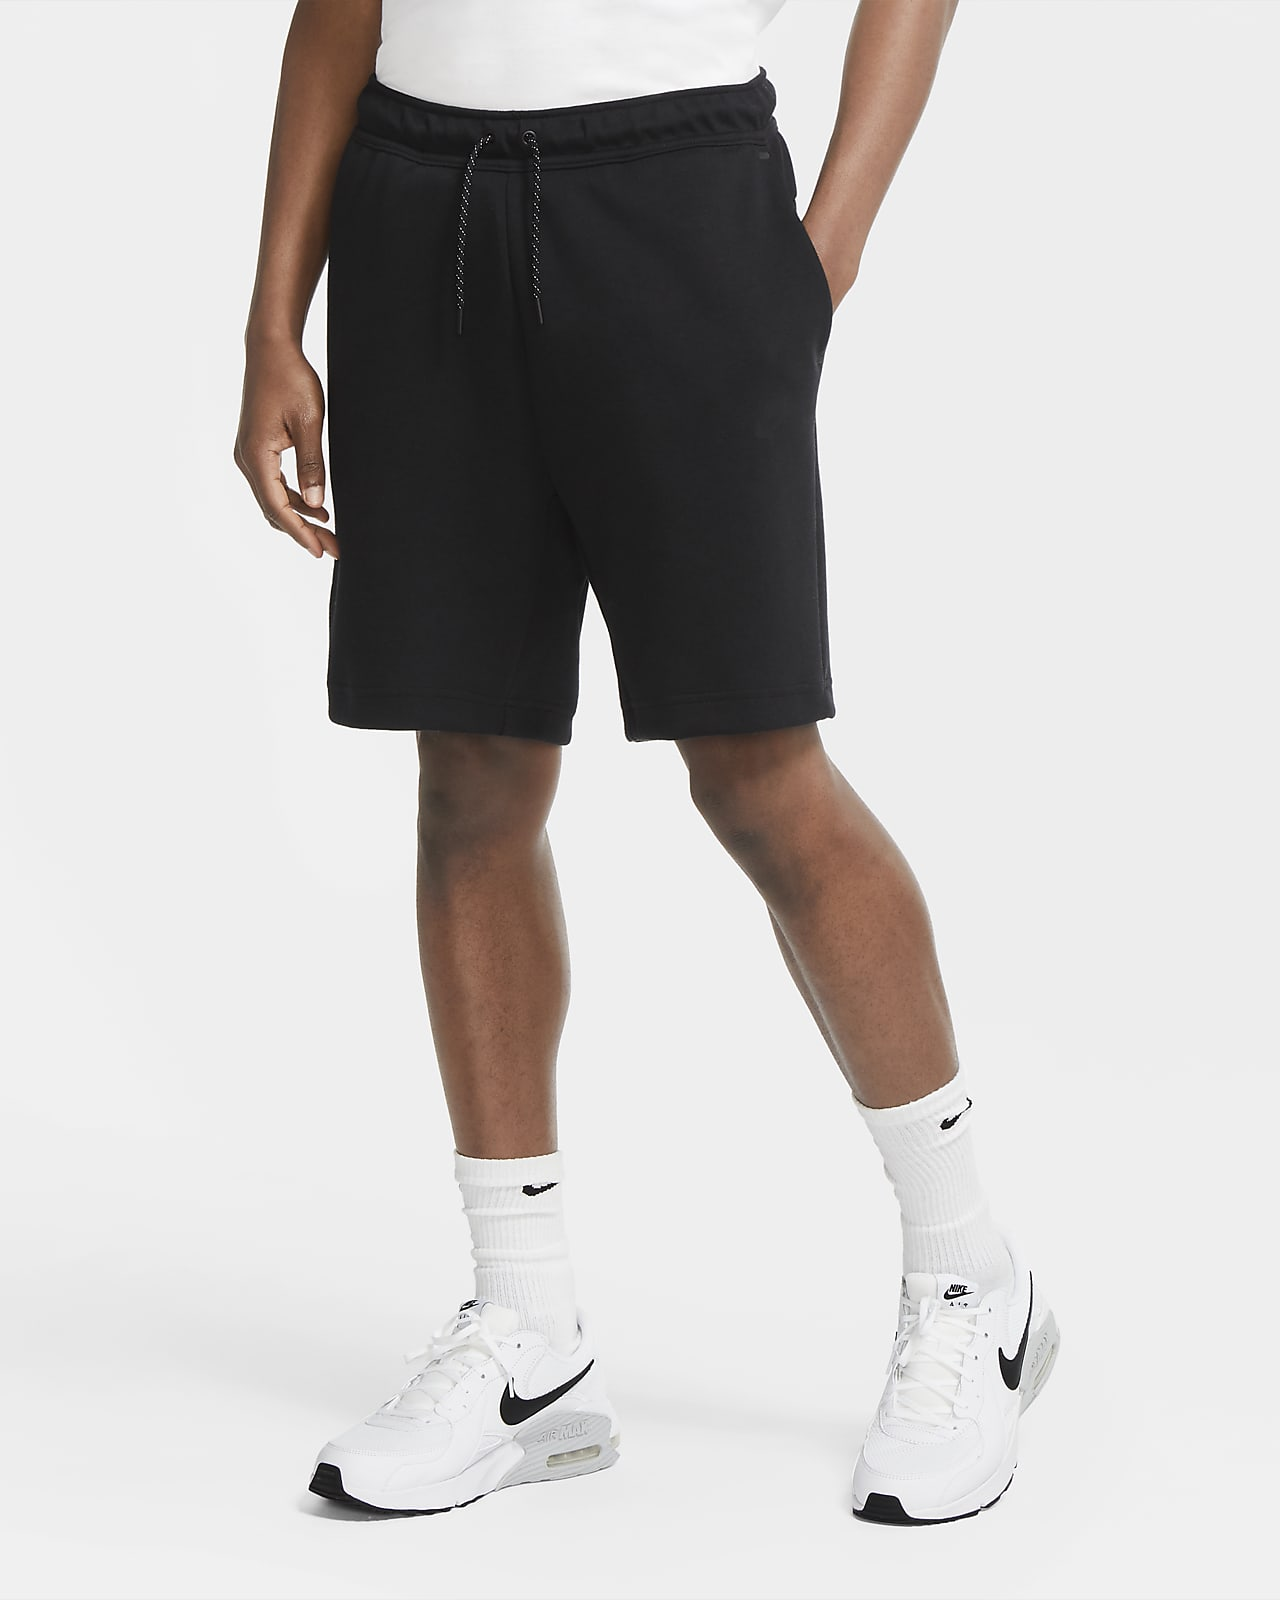 Nike Sportswear Tech Fleece Pantalons curts - Home